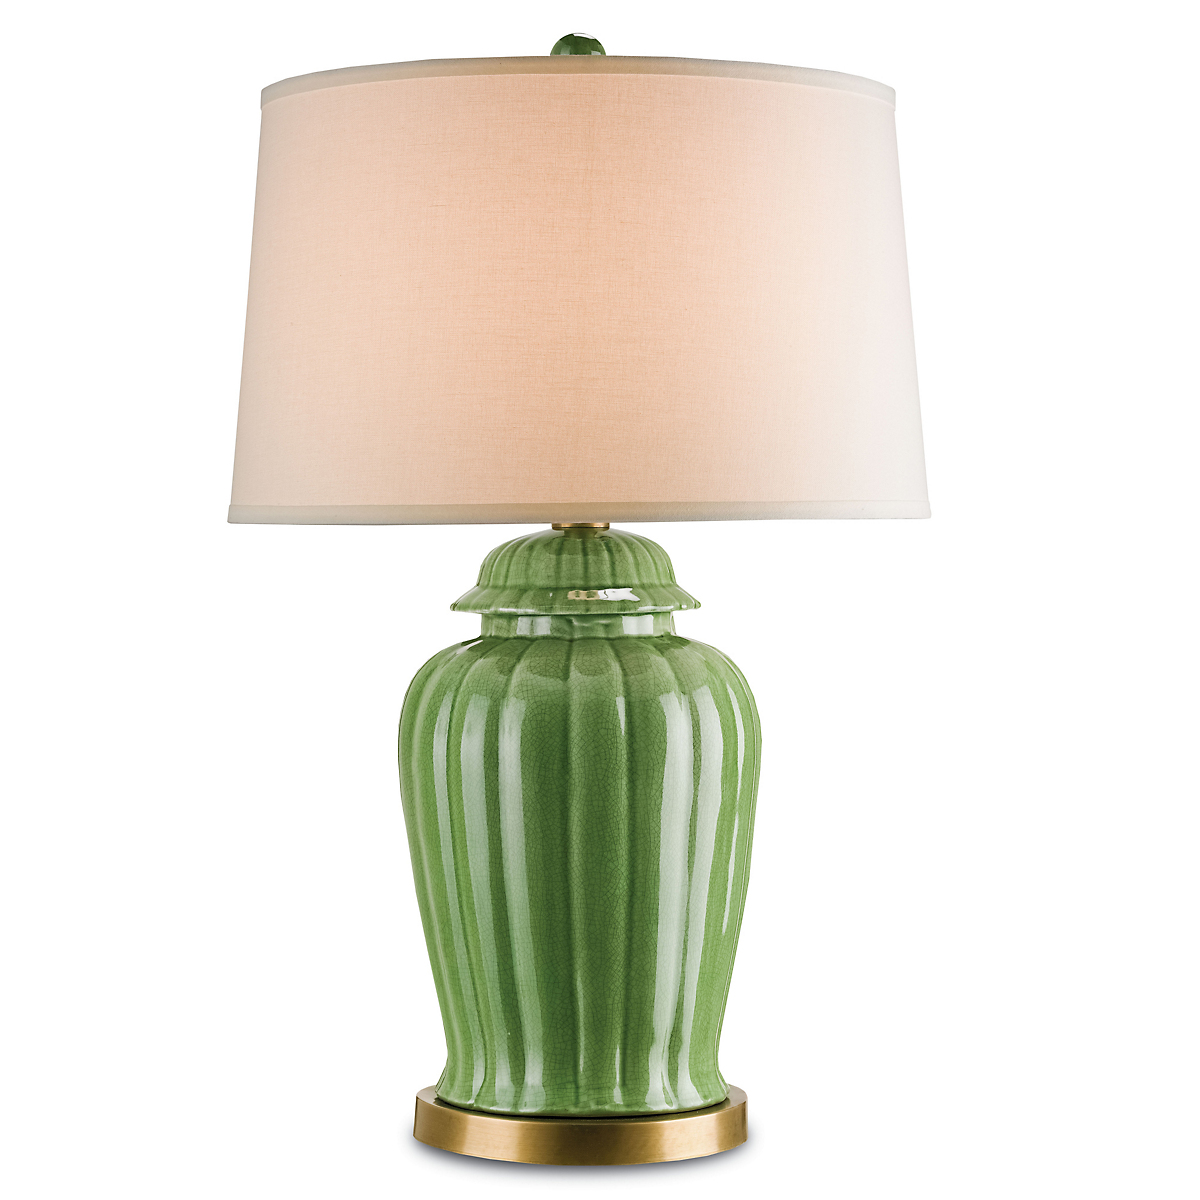 Currey & Company Glenda Table Lamp